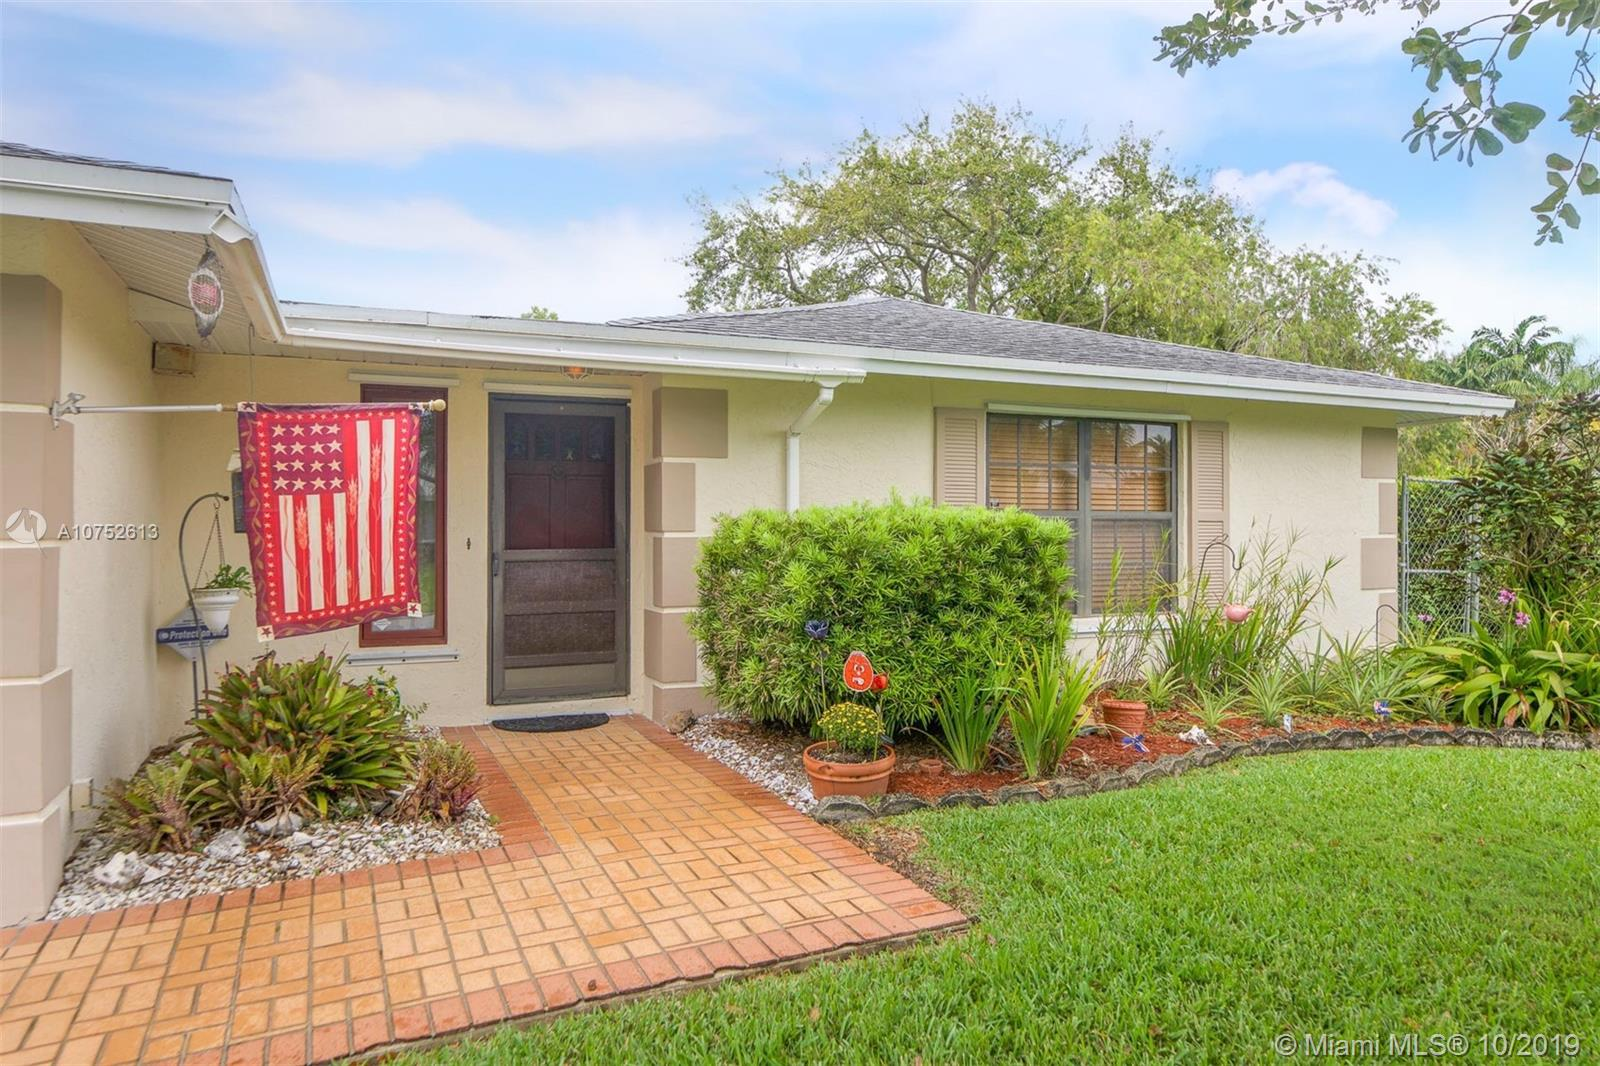 8521 SW 181st St, Kendall in Miami-dade County County, FL 33157 Home for Sale